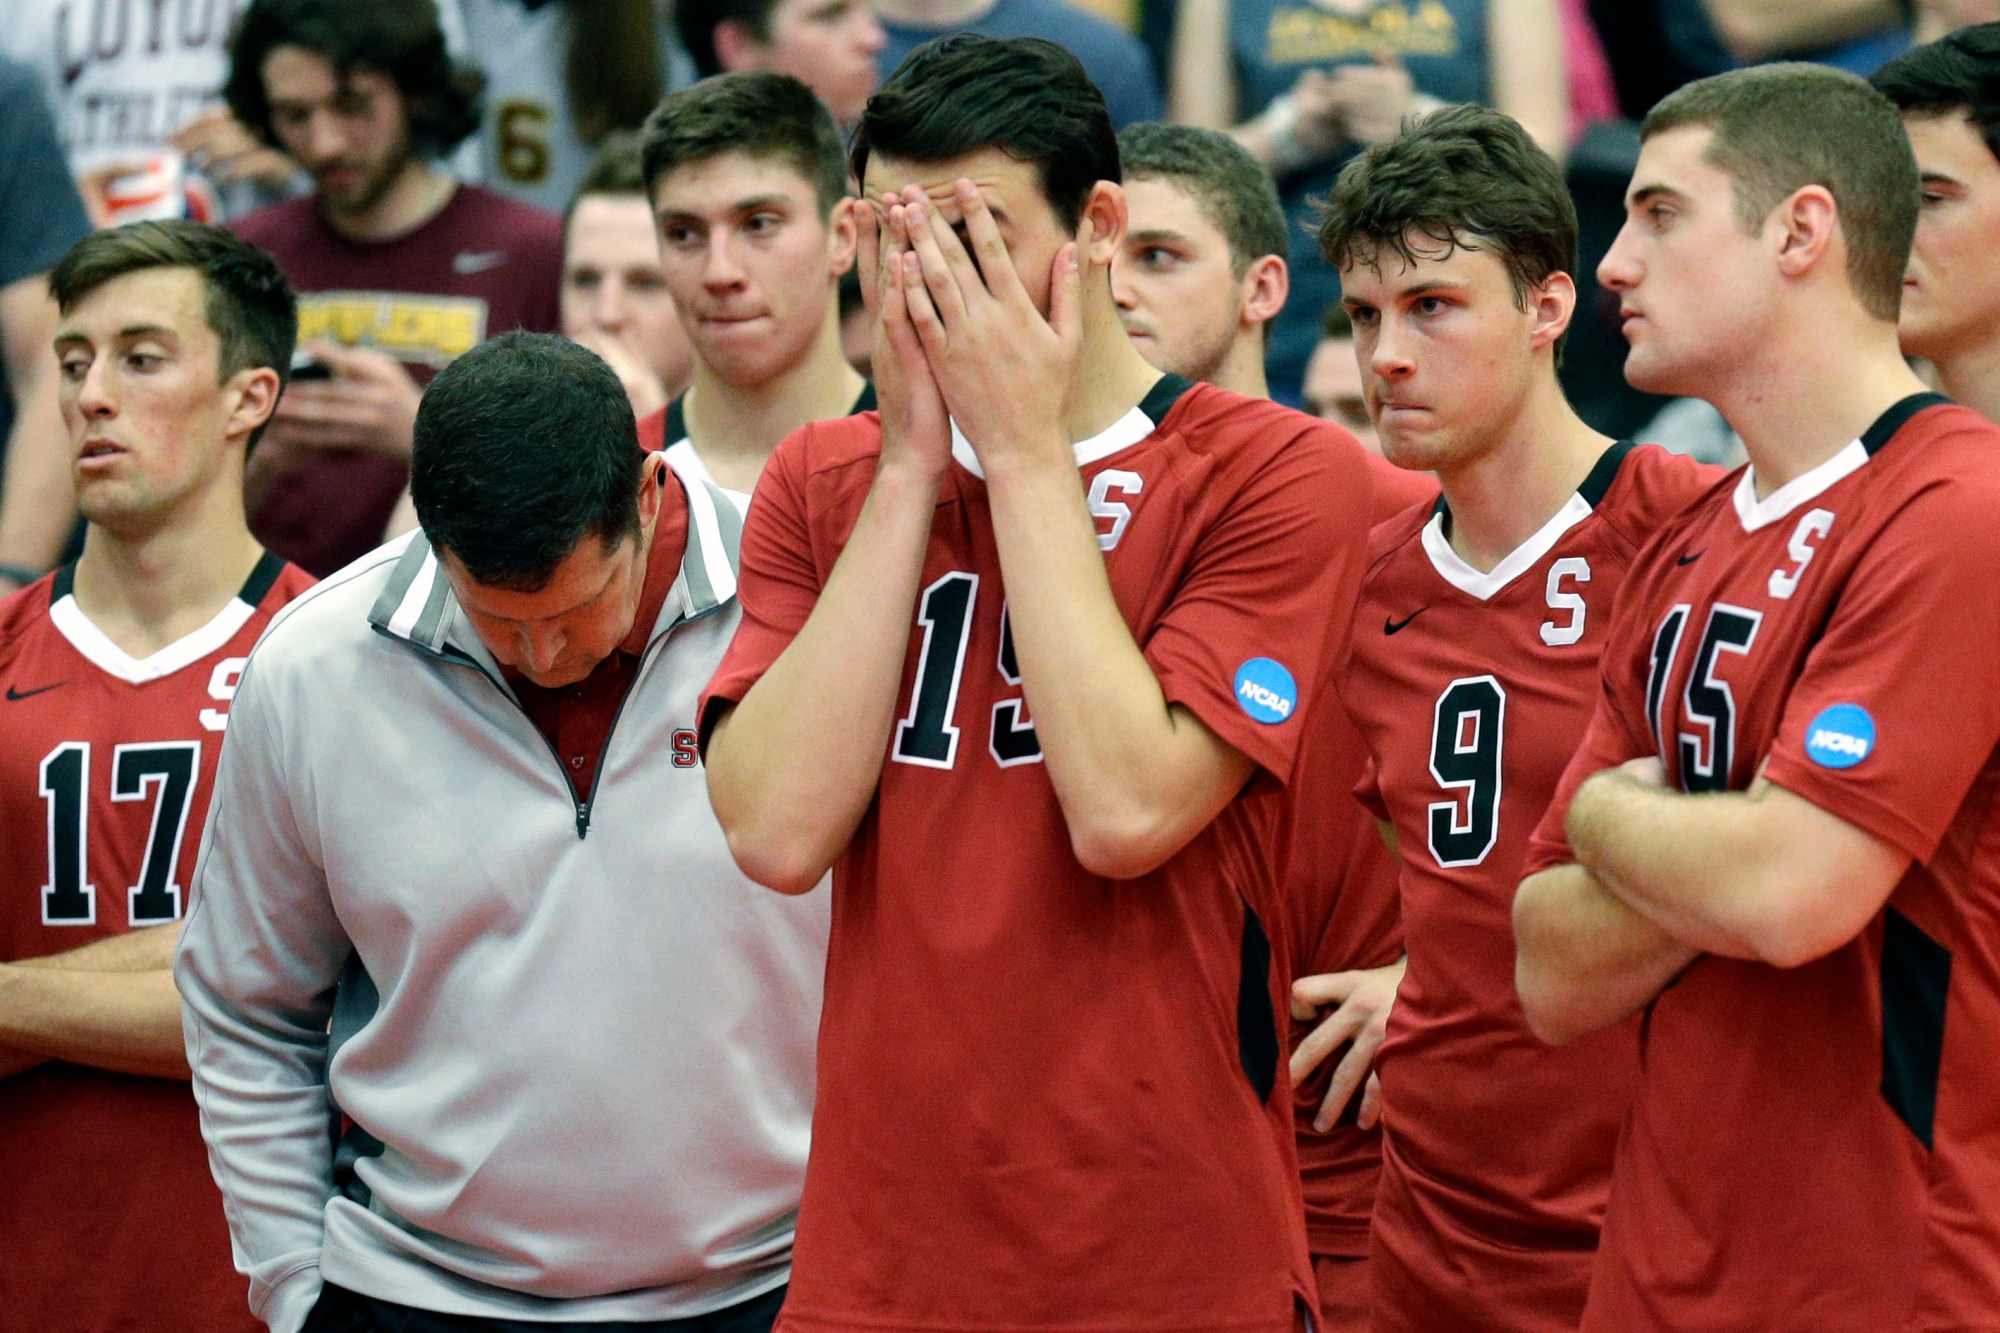 The Stanford men's volleyball head coach John Kosty, second from left, looks down as players react to a loss in the NCAA men's college volleyball championship in Chicago on May 3, 2014. (AP Photo/Nam Y. Huh, File)